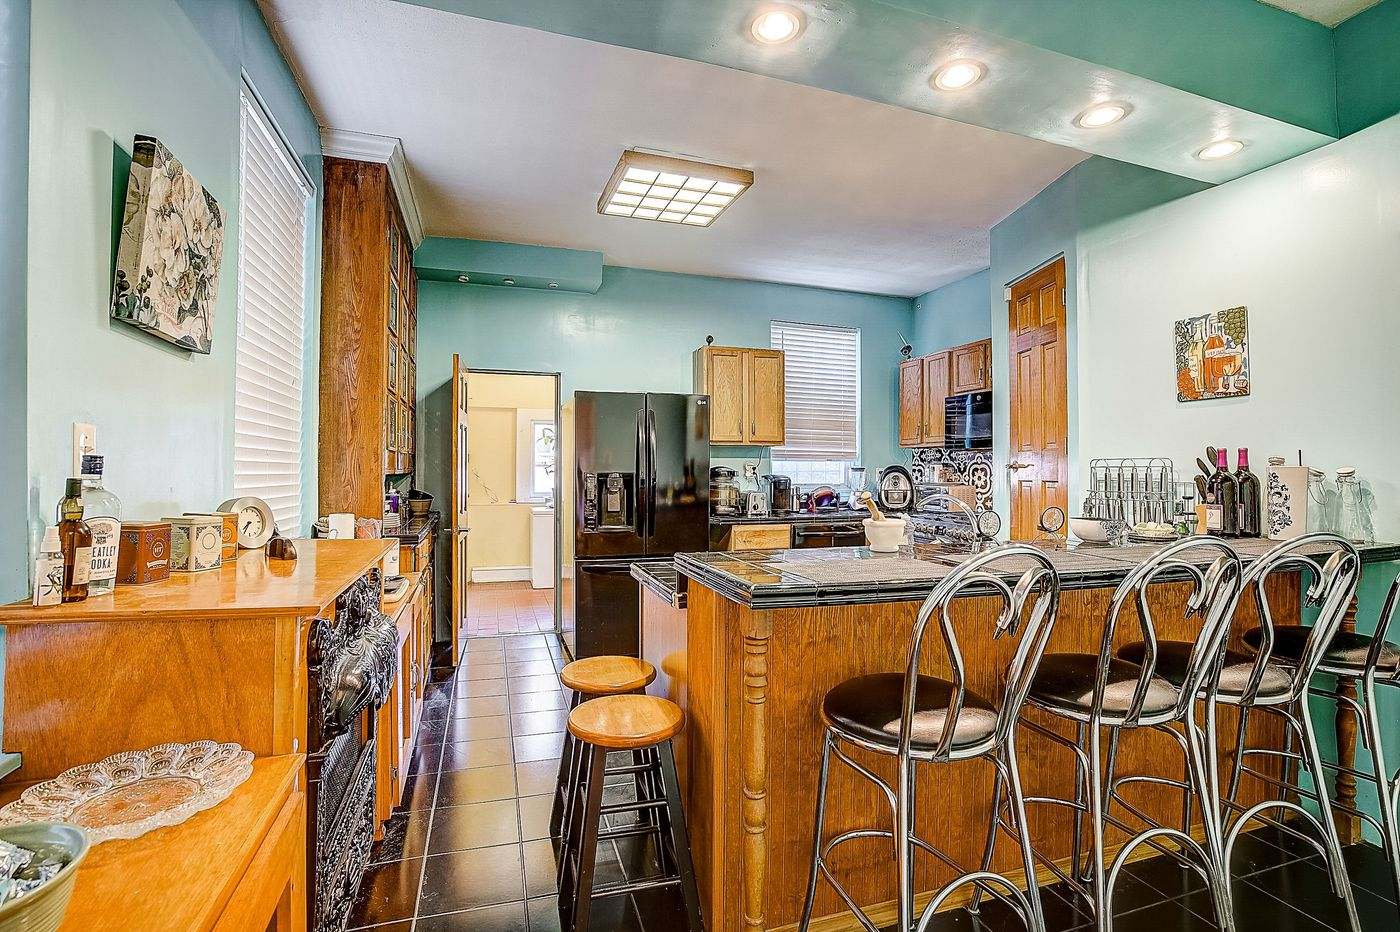 On the market: Eight-bedroom twin near the Penn campus for $725,000